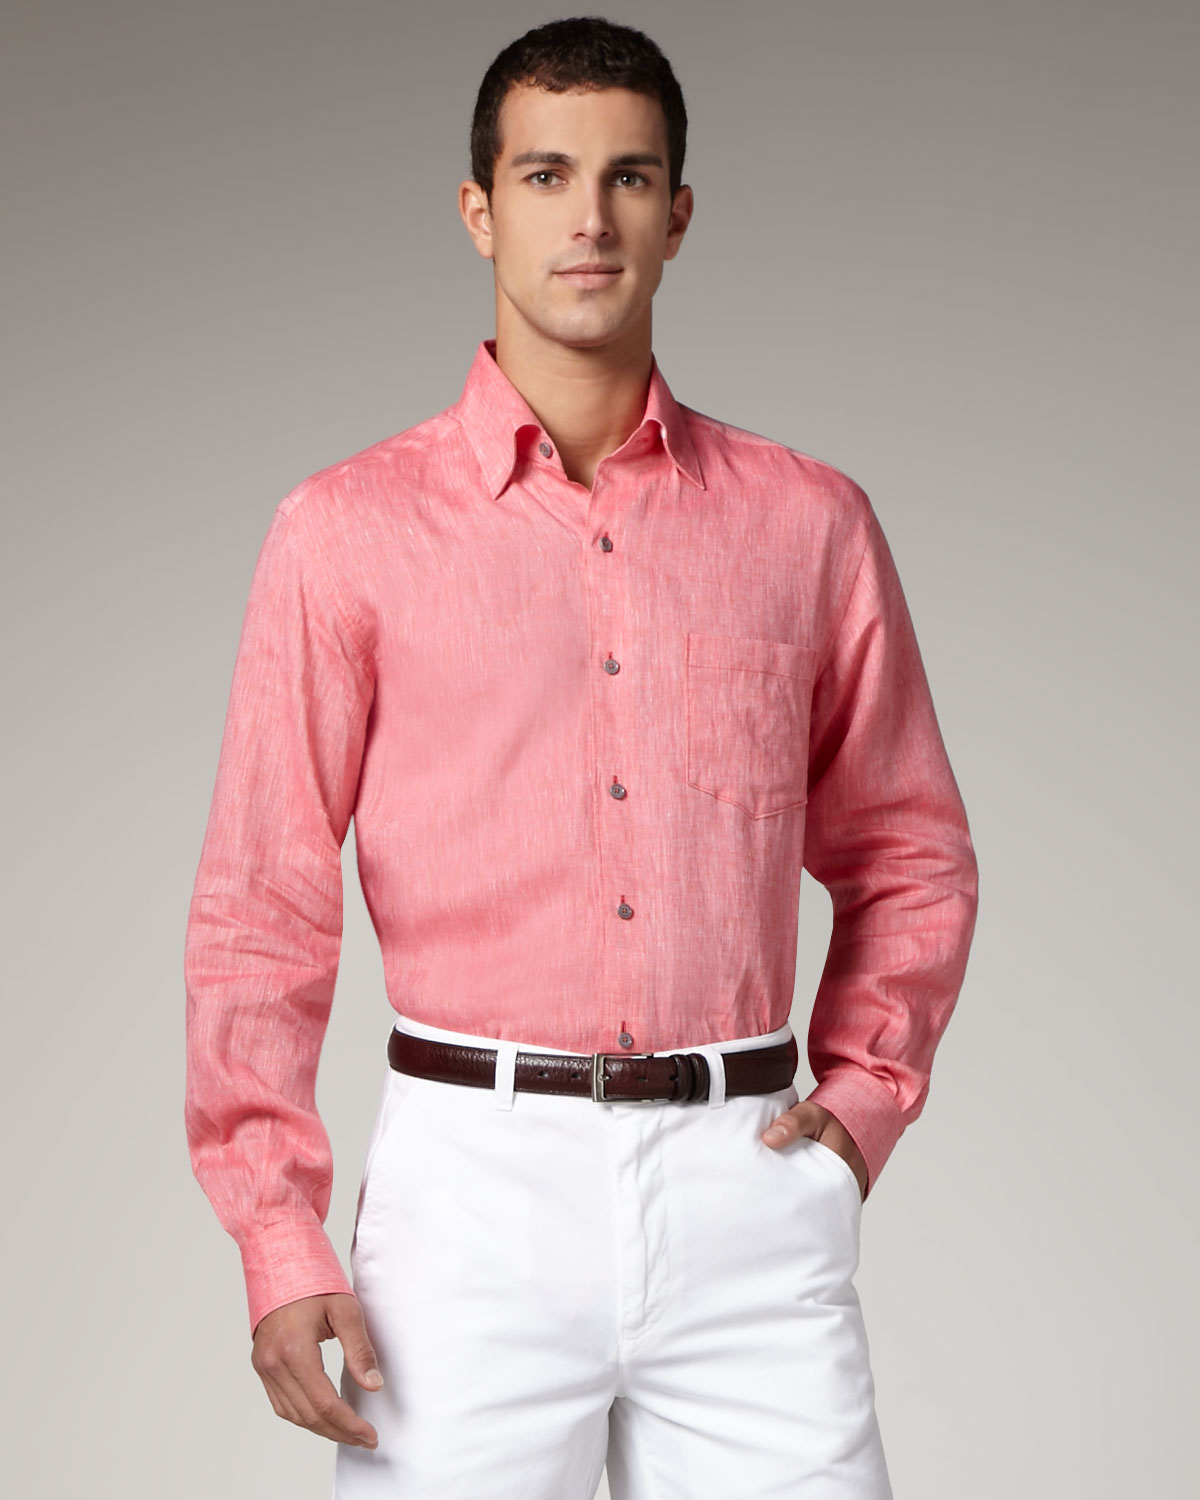 Ermenegildo zegna linen sport shirt coral in pink for men for Coral shirts for guys